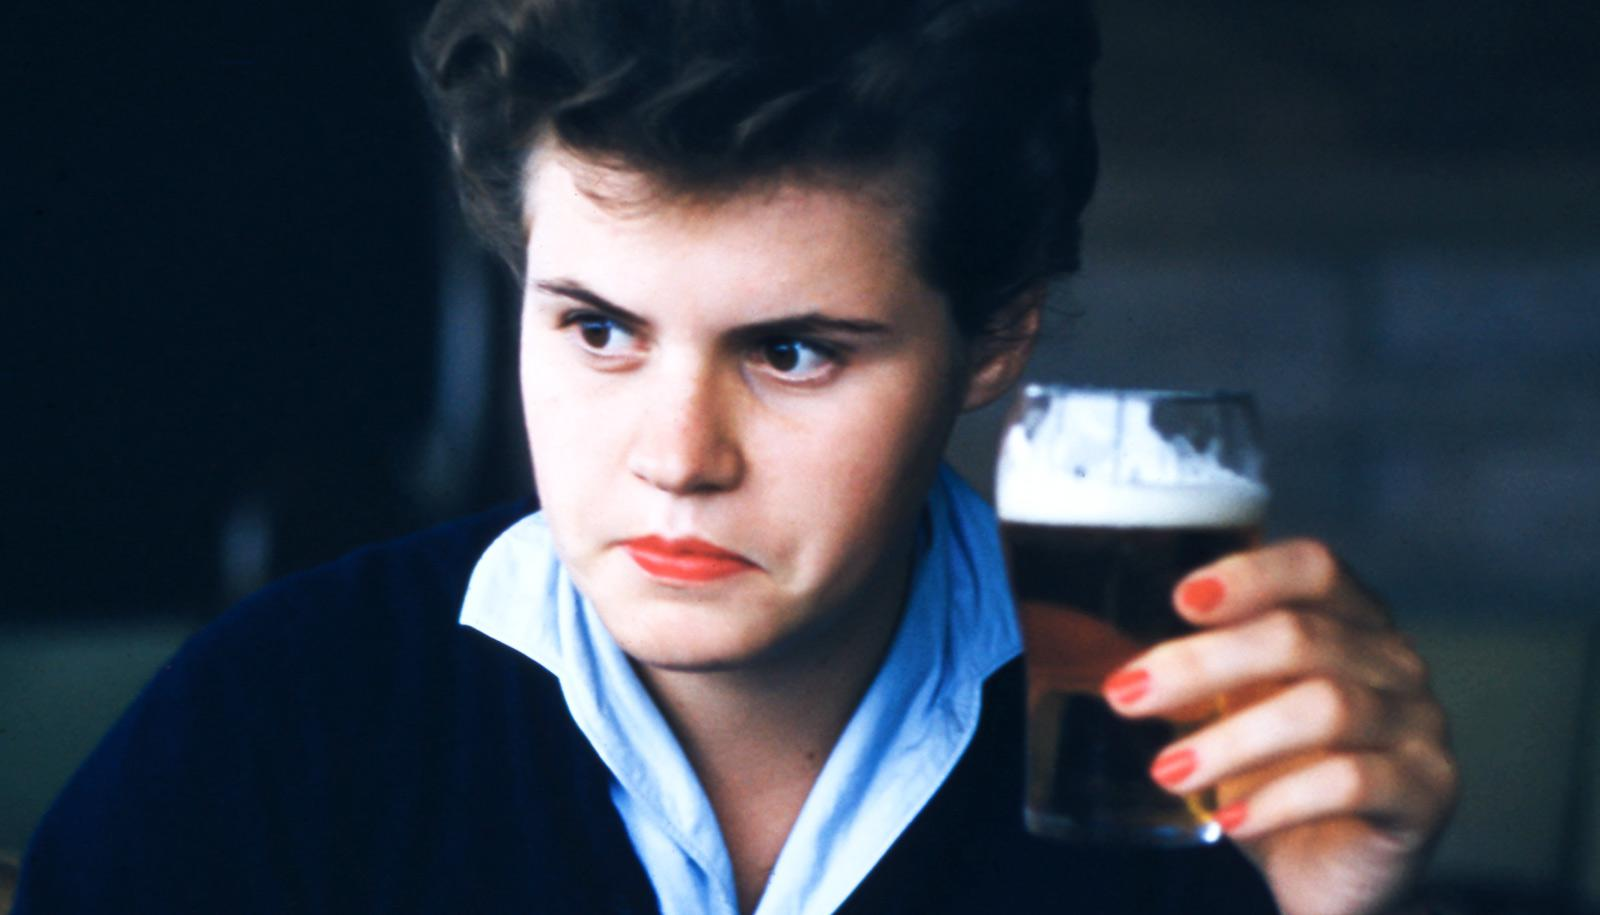 1950's person holding beer stares intensely